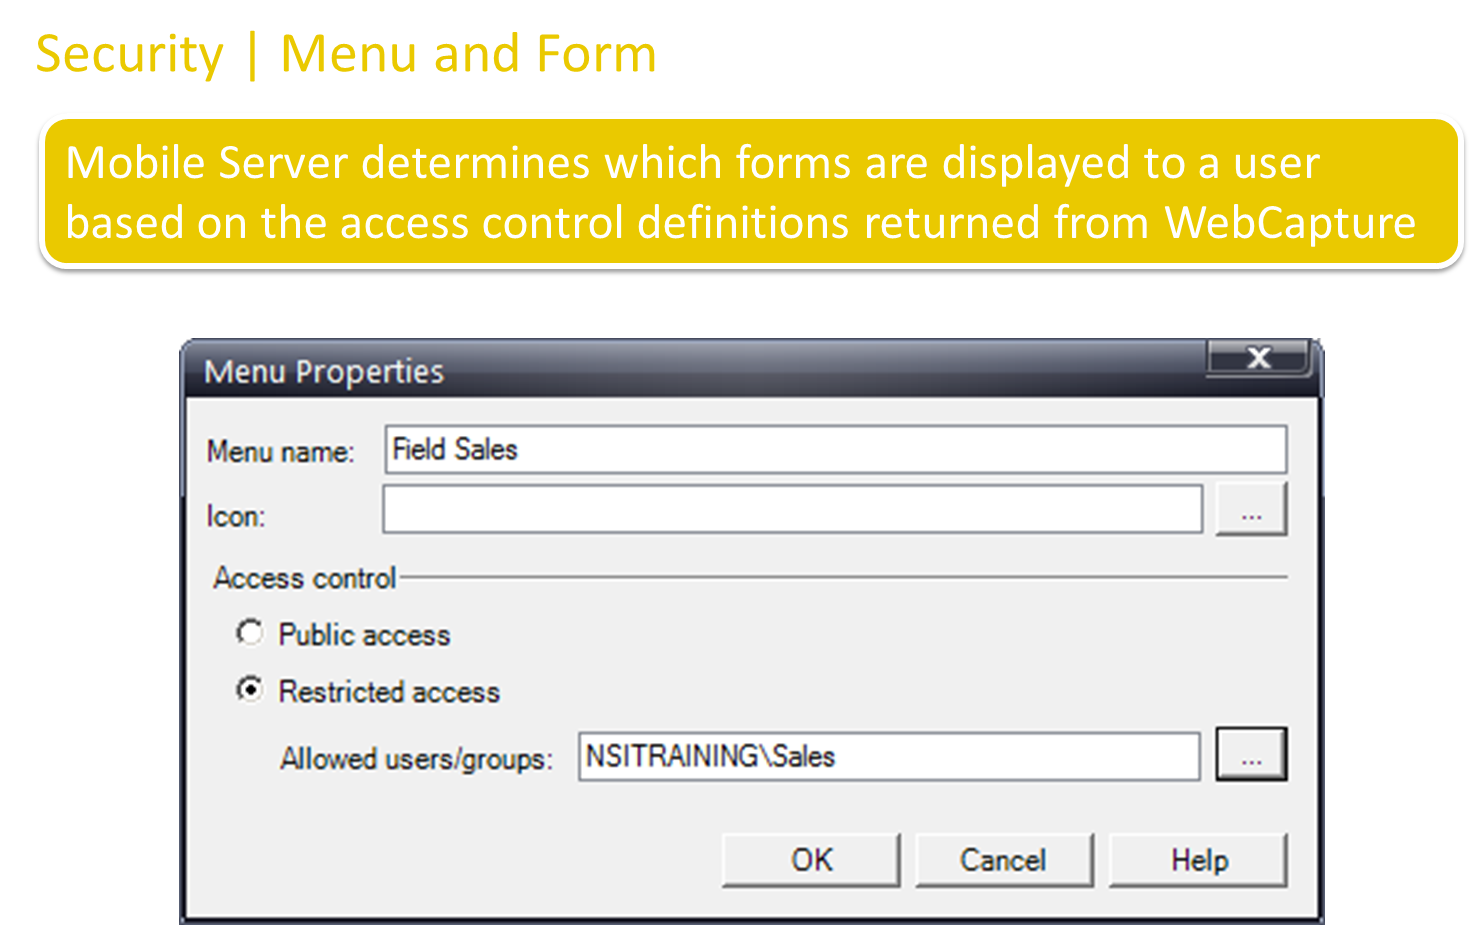 How to control access to Feature Forms on the Mobile Client?